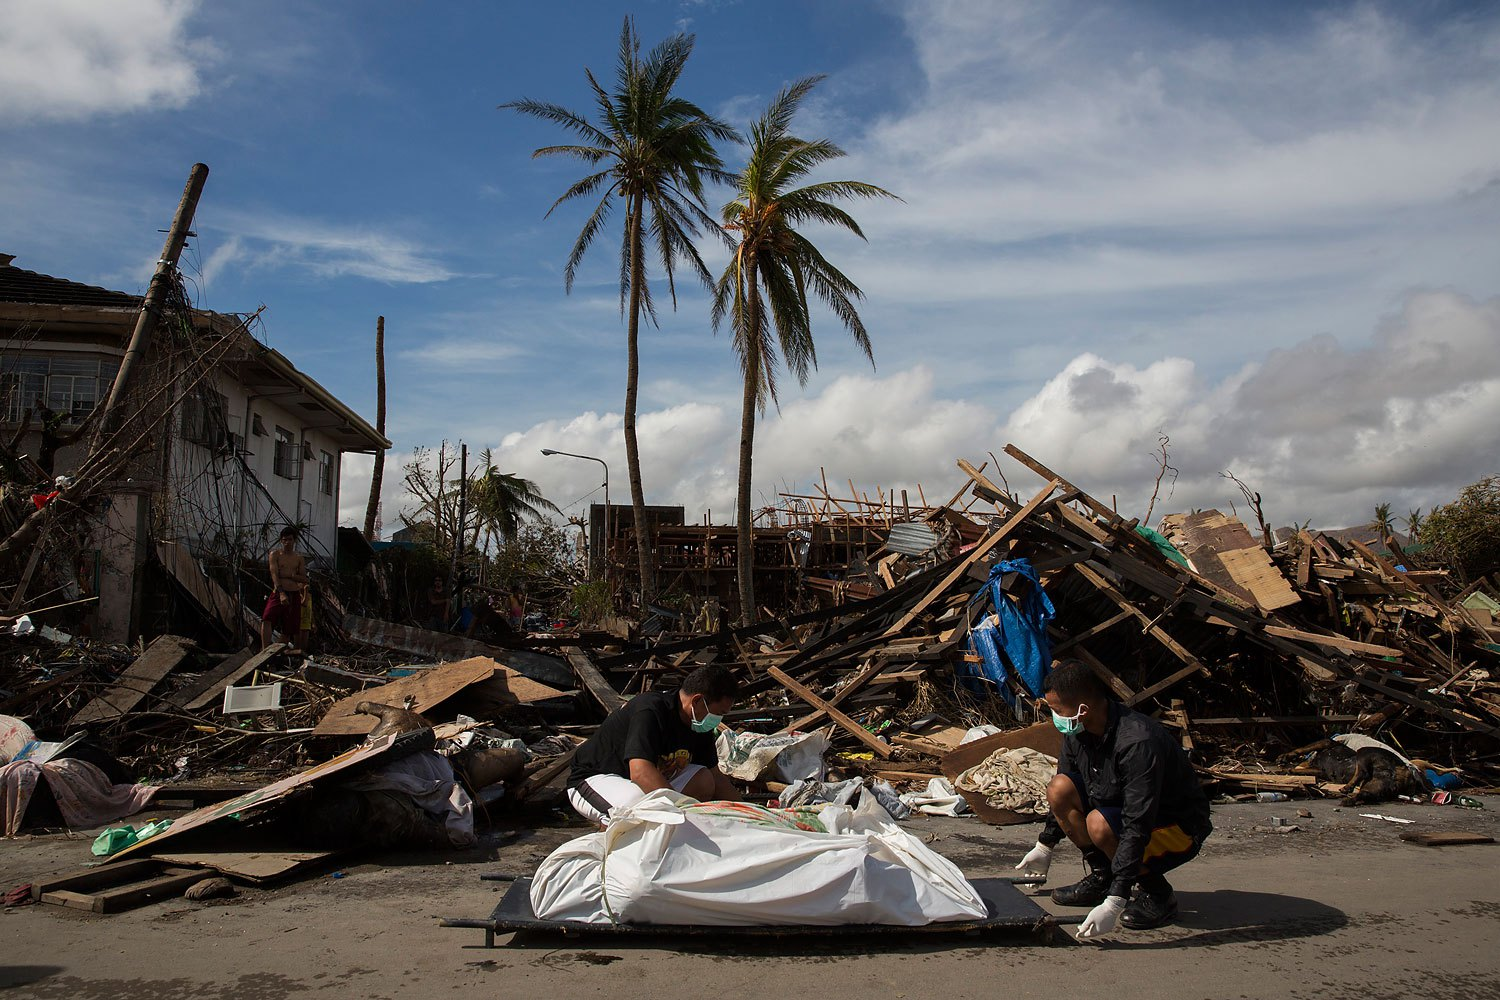 Men remove the body of a woman killed by Haiyan Typhoon in Tacloban, Philippines on November 13, 2013.